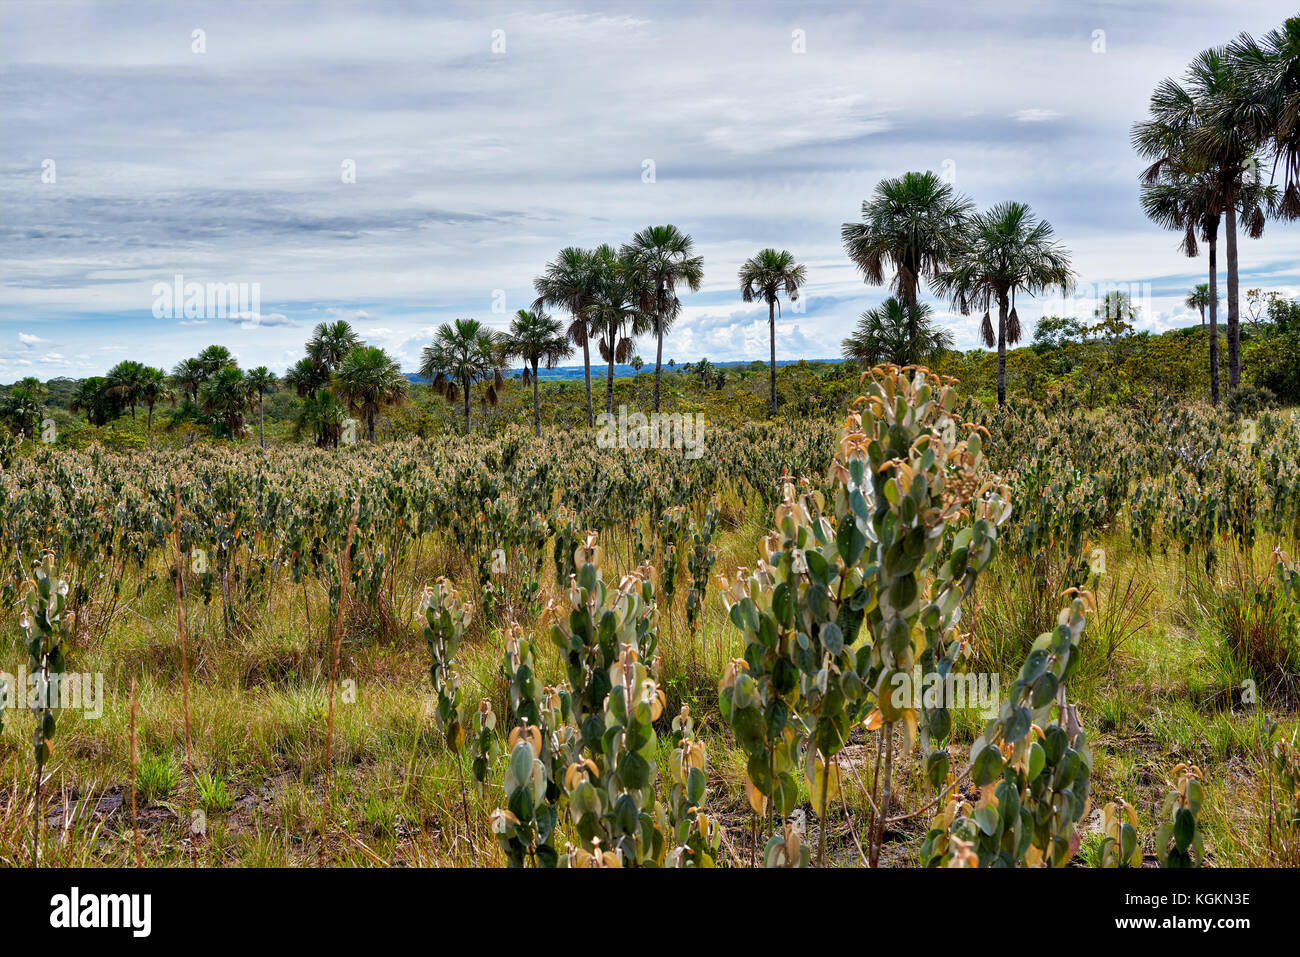 typical landscape with palm trees and plants in National Park Serrania de la Macarena, La Macarena, Colombia, South - Stock Image